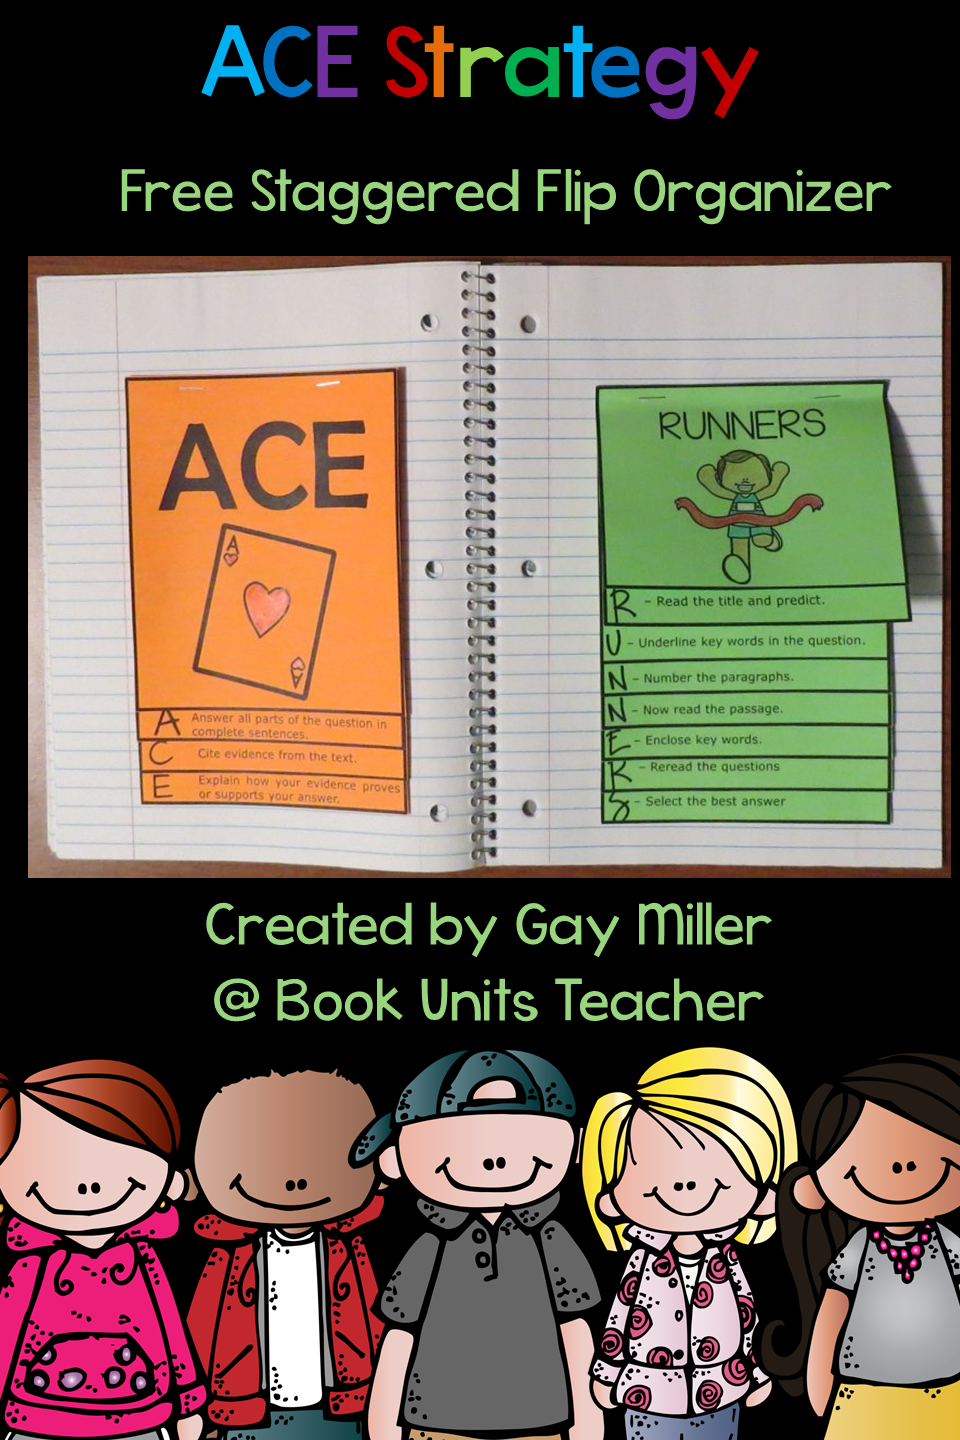 Check out this free staggered flip organizer explaining the ACE Writing Strategy.